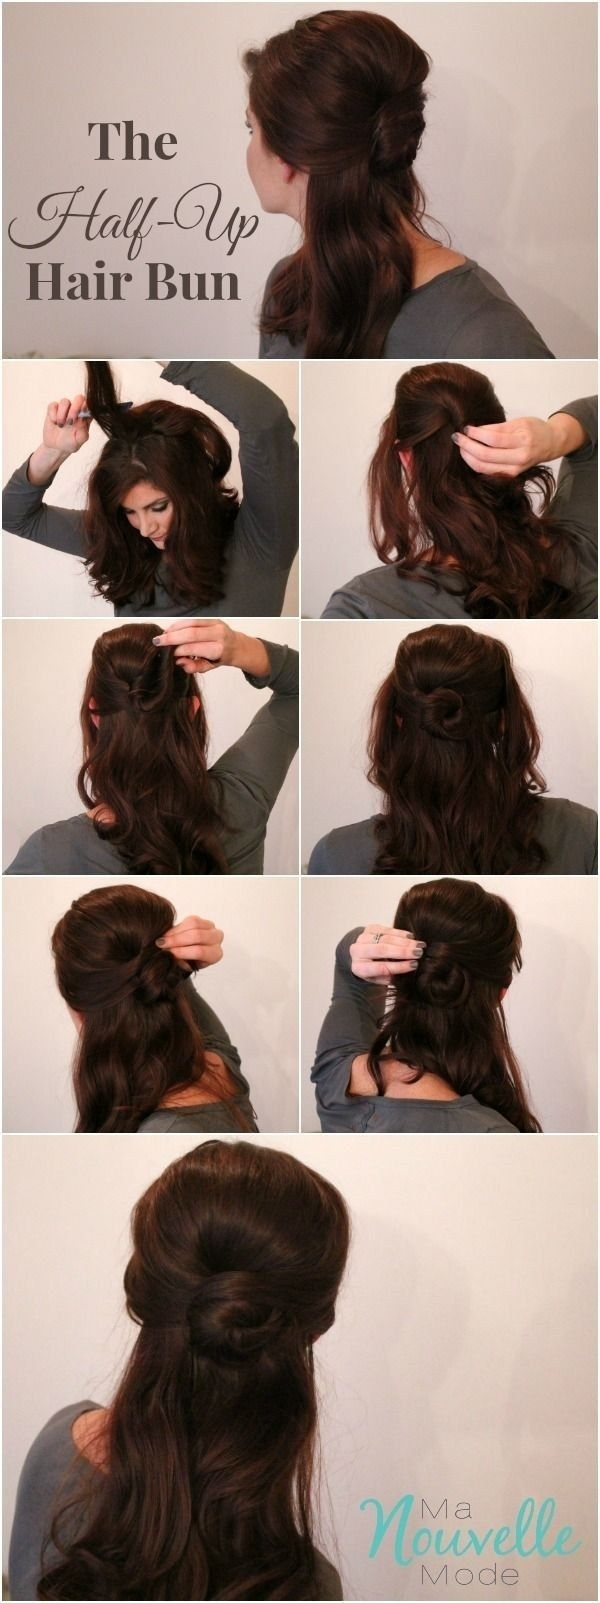 1half up half down hairstyle4